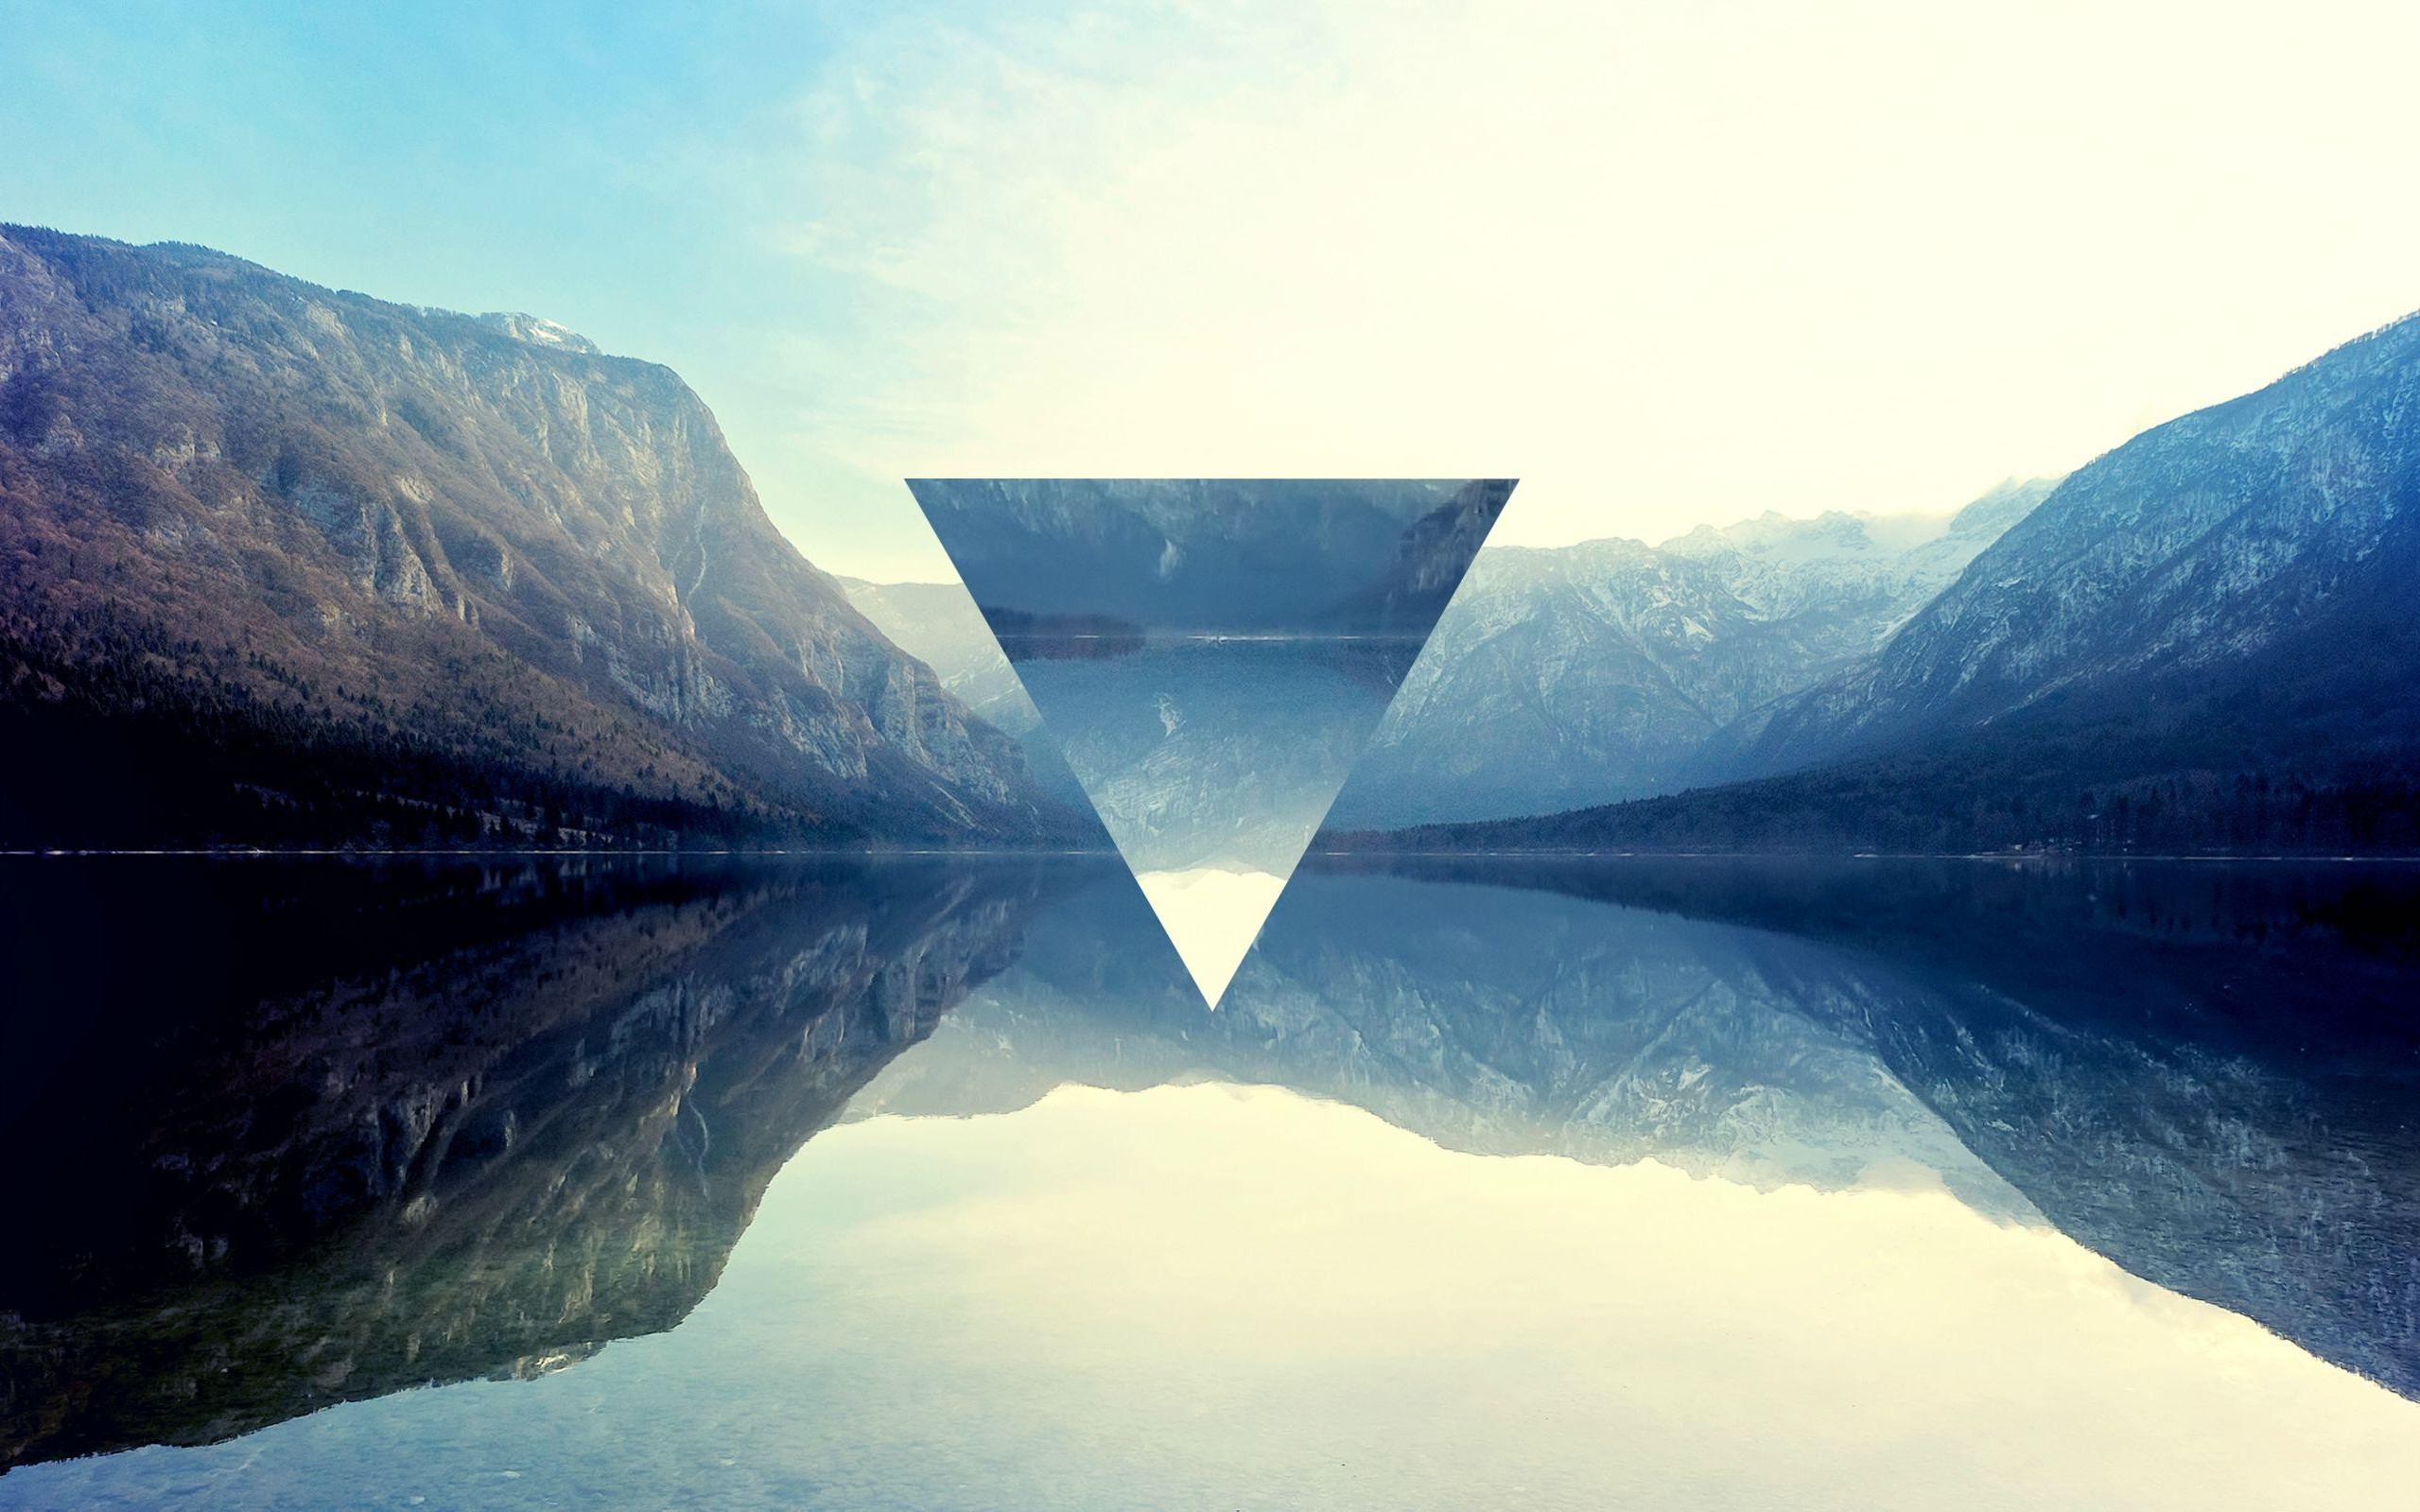 Uhd 3d Wallpaper Download Triangle Polyscape Mountain Lake Reflection Wallpapers